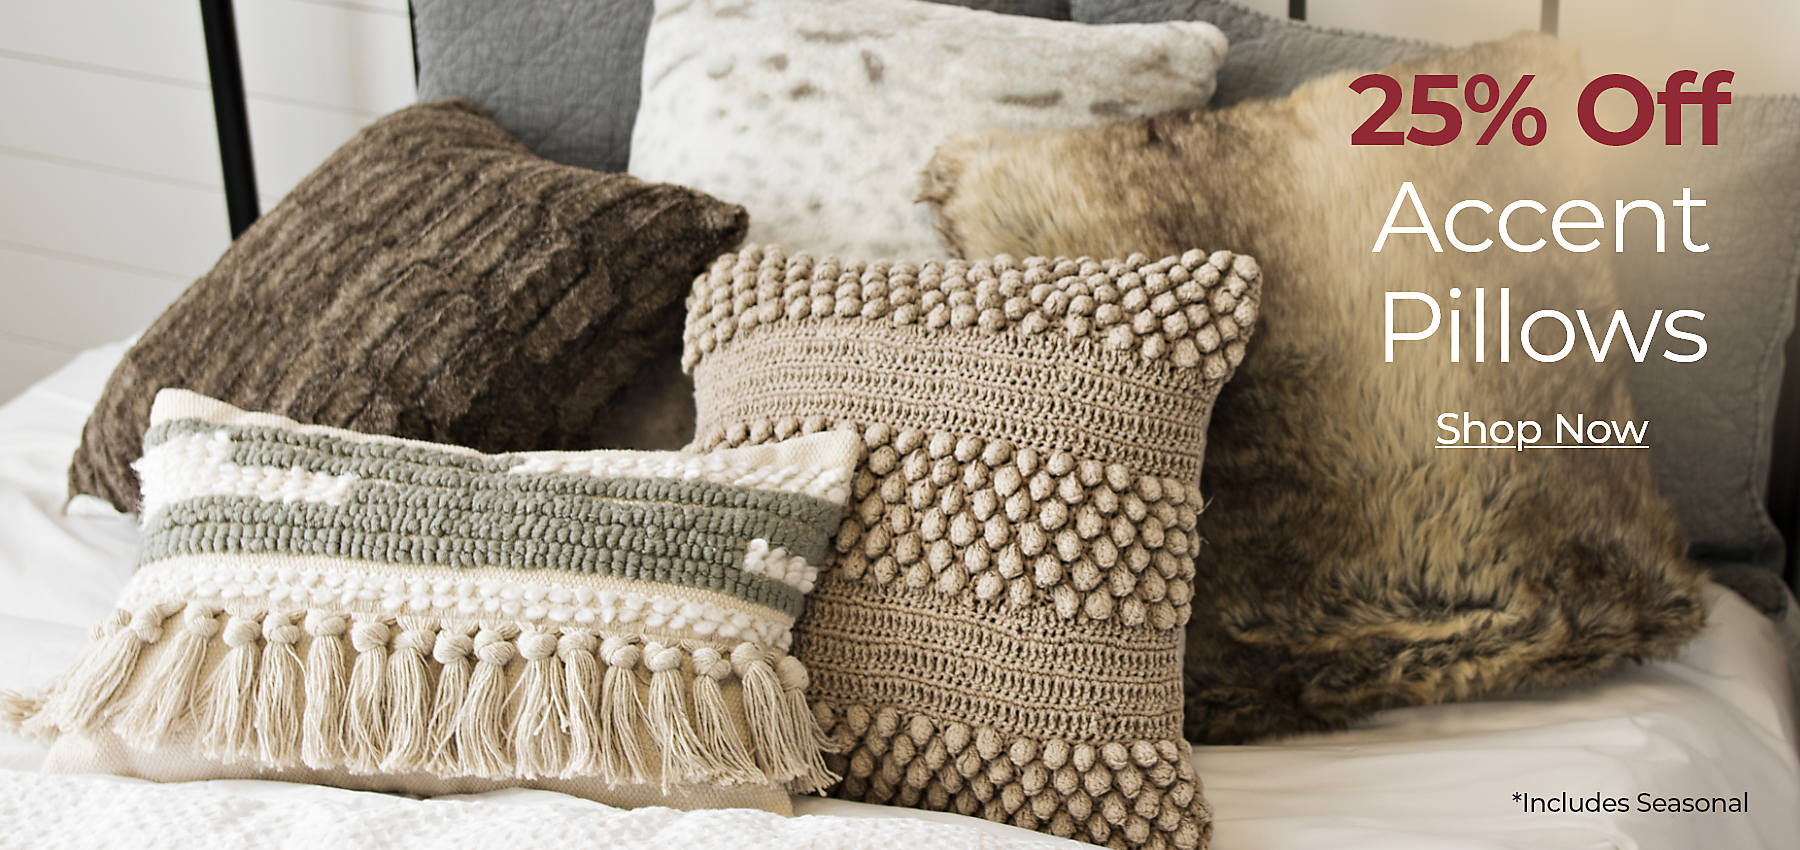 25% off Accent Pillows Includes Seasonal Shop Now